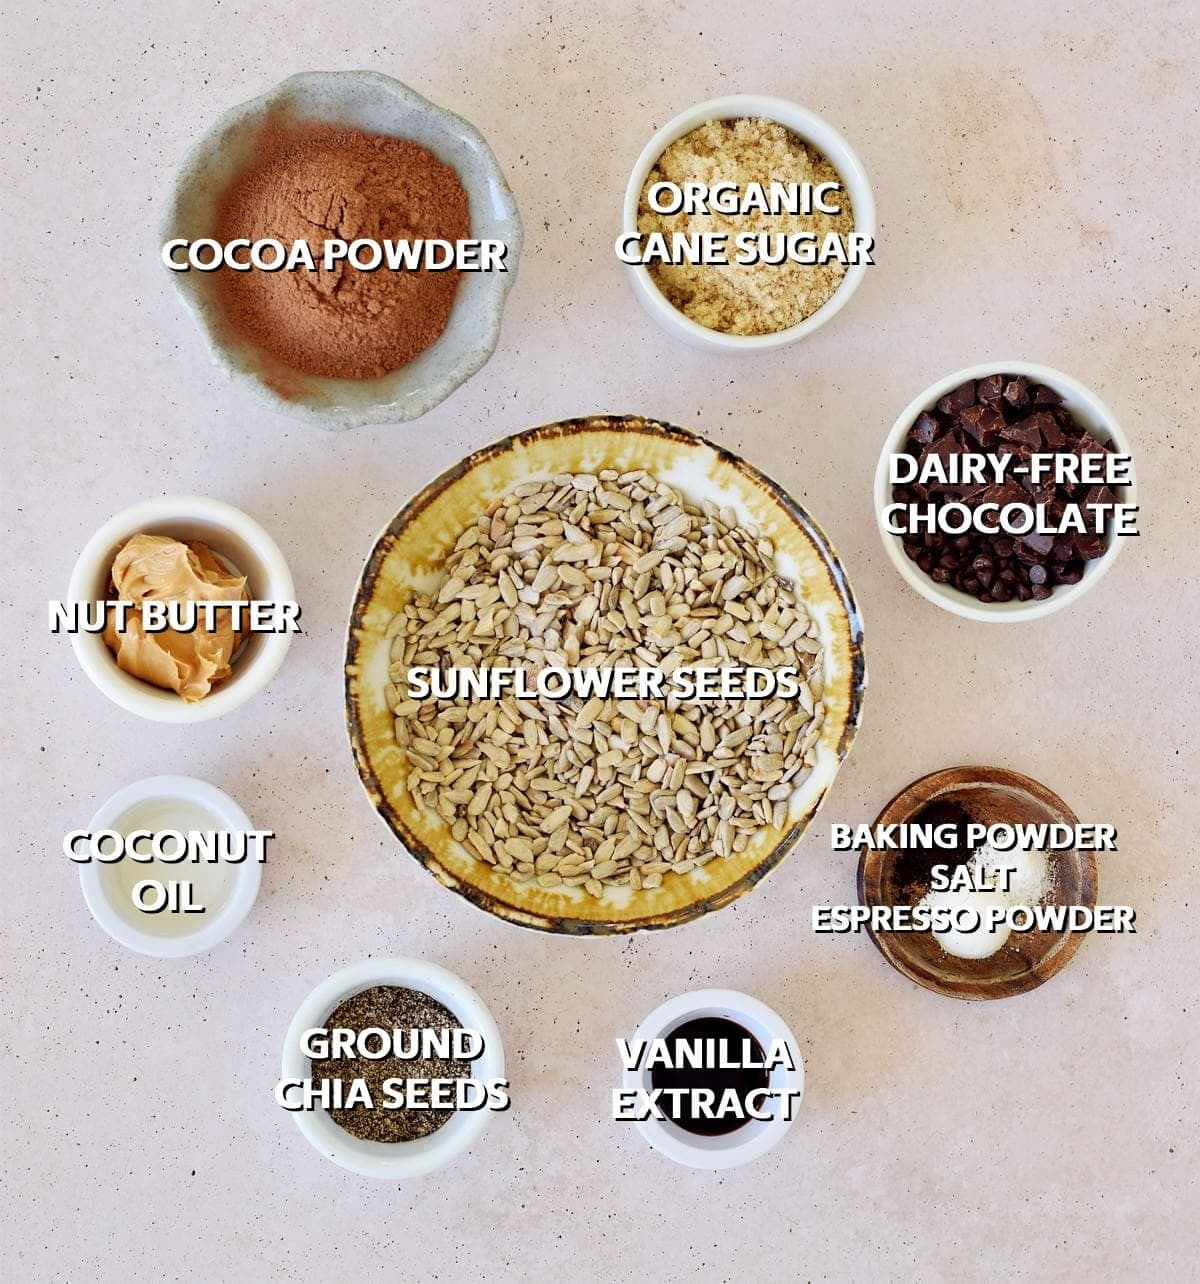 Ingredients for vegan double chocolate cookies